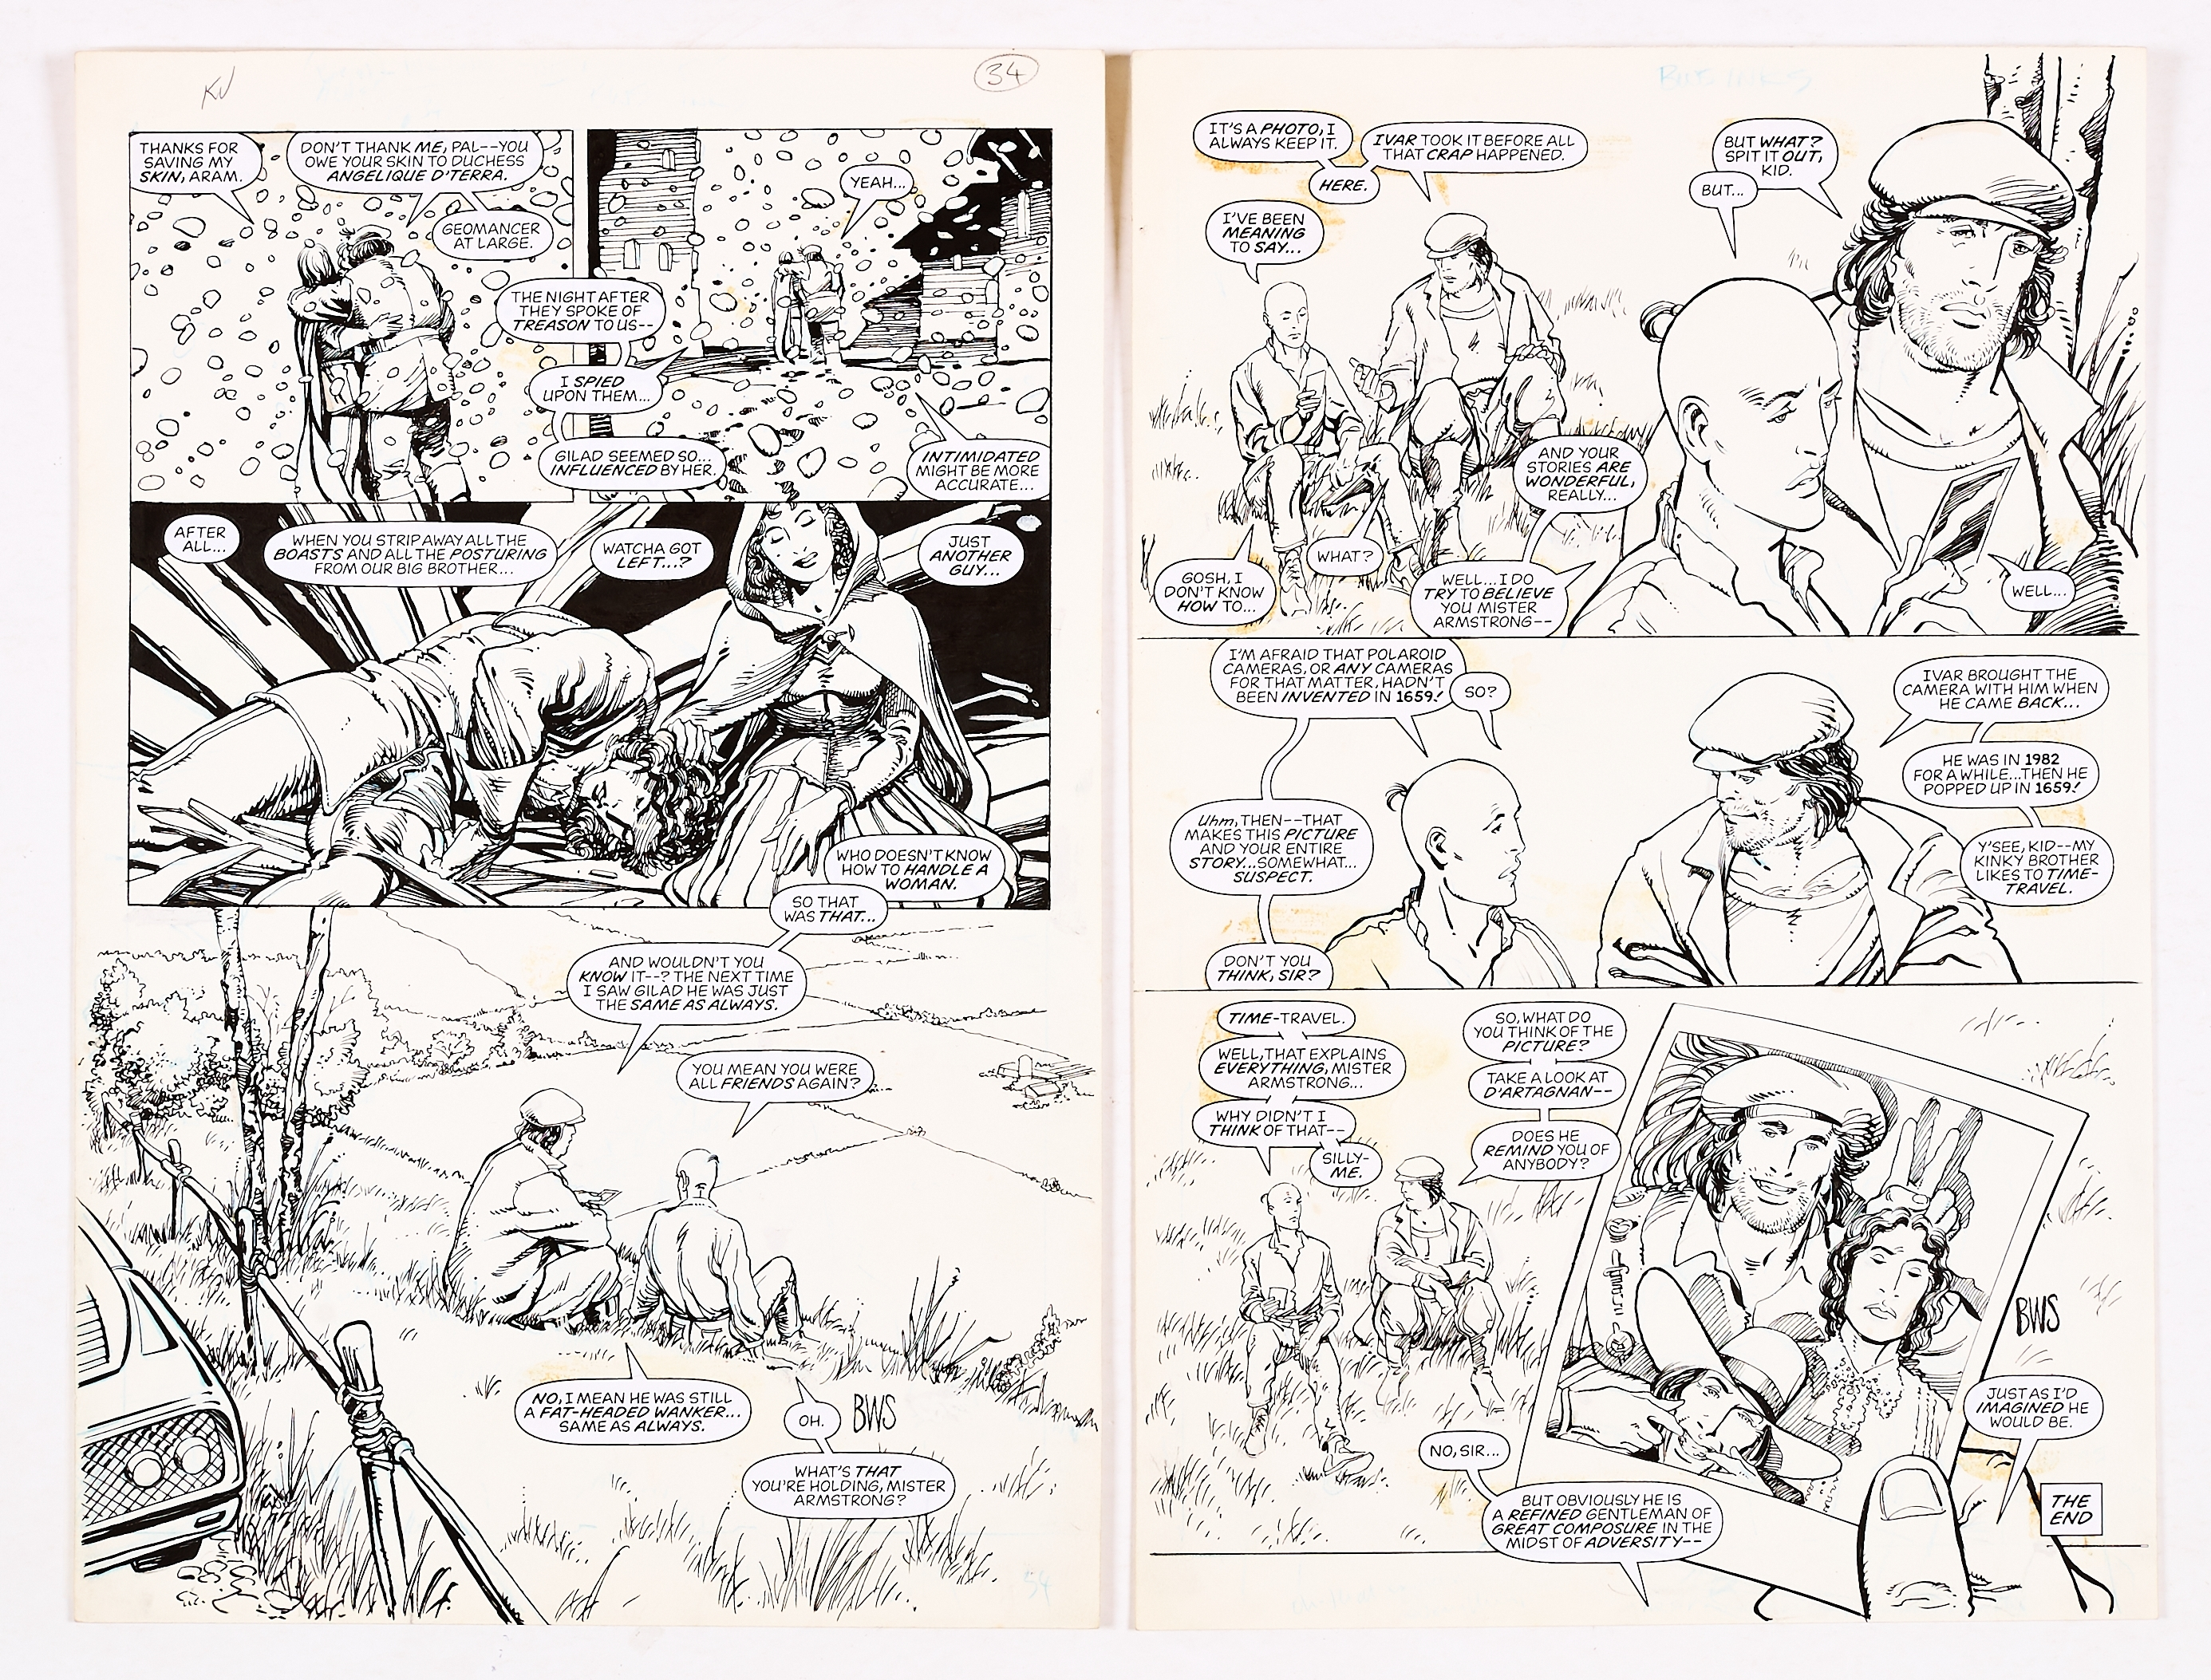 Lot 254 - Archer and Armstrong #8, pgs 24 & 25 original artwork (1992) drawn and initialled by Barry Windsor-